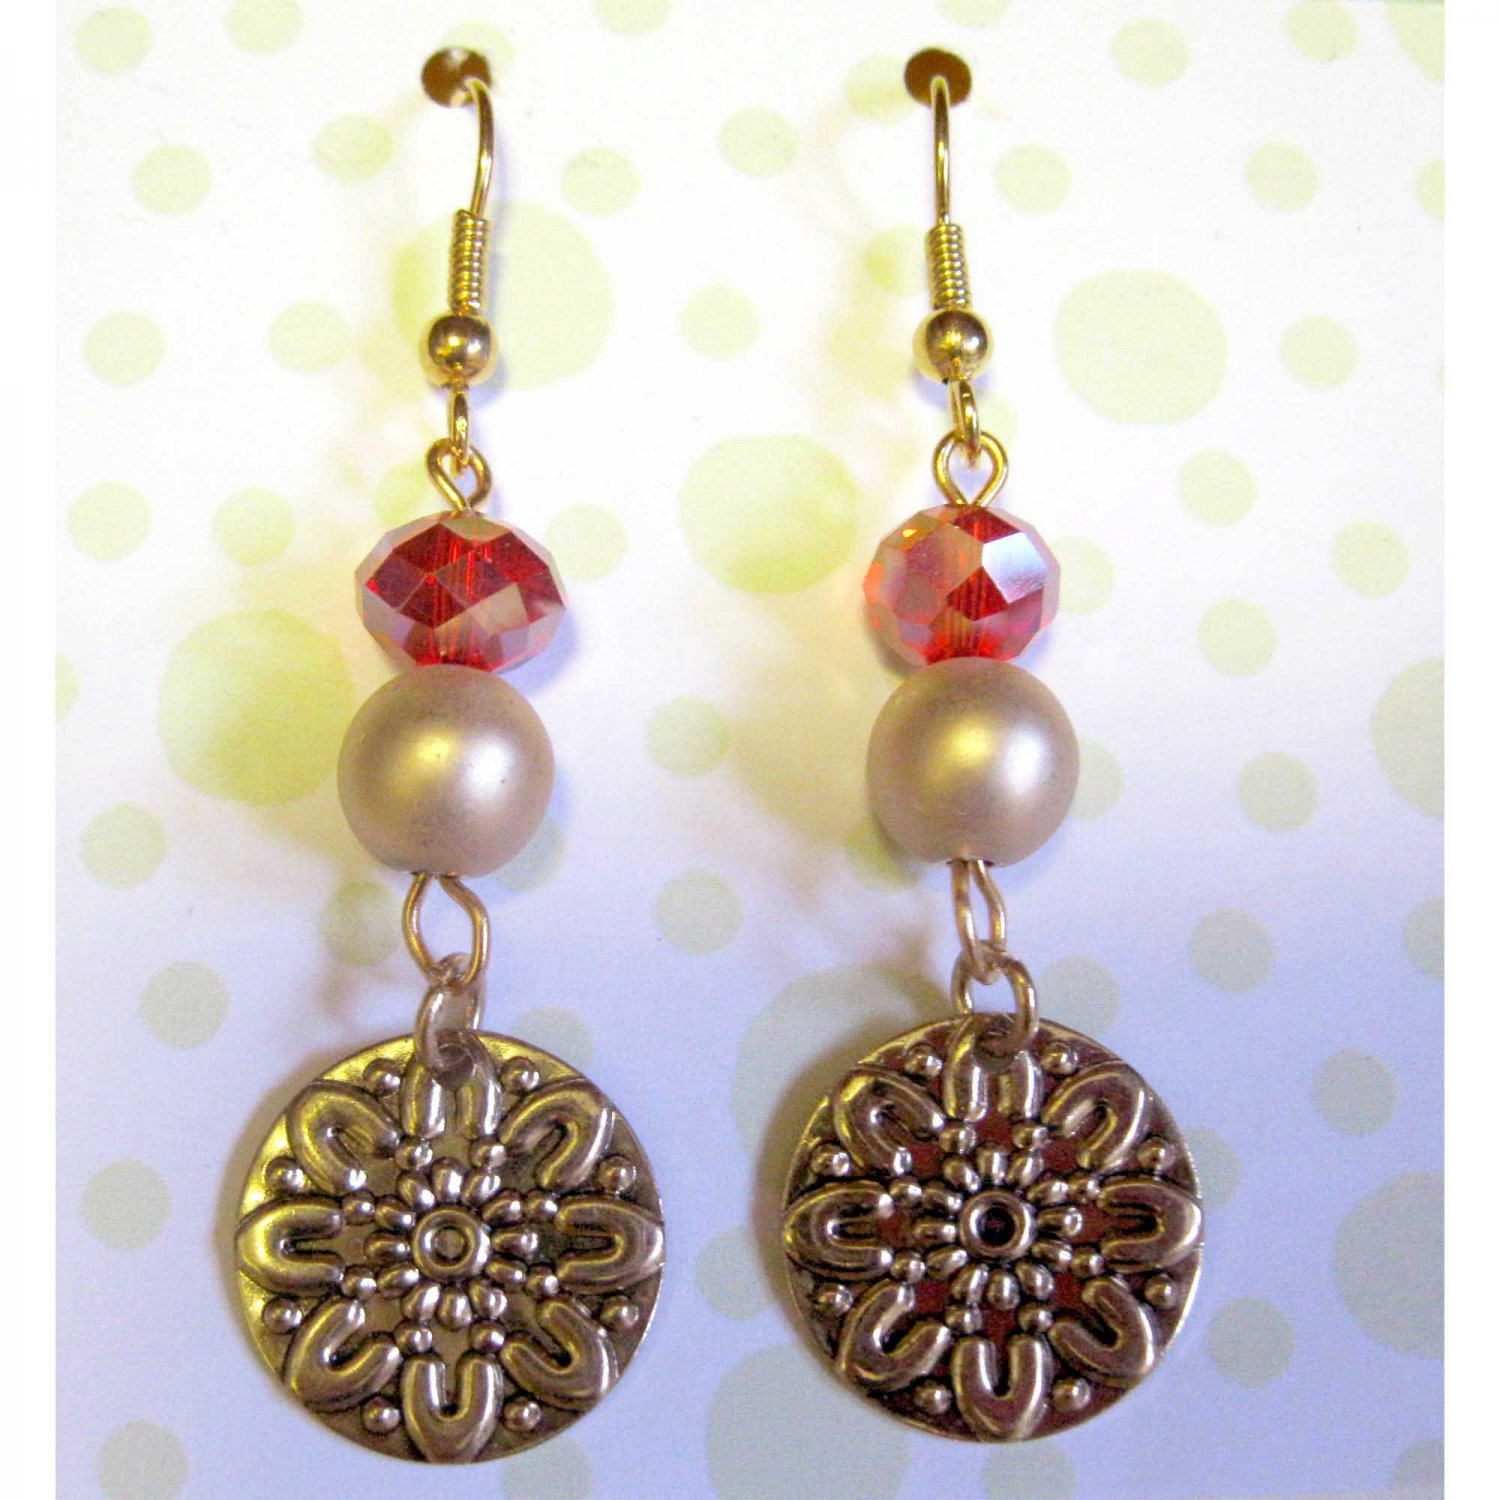 Red and gold earrings fashion drop jewelry 1439e for Drop shipping jewelry business